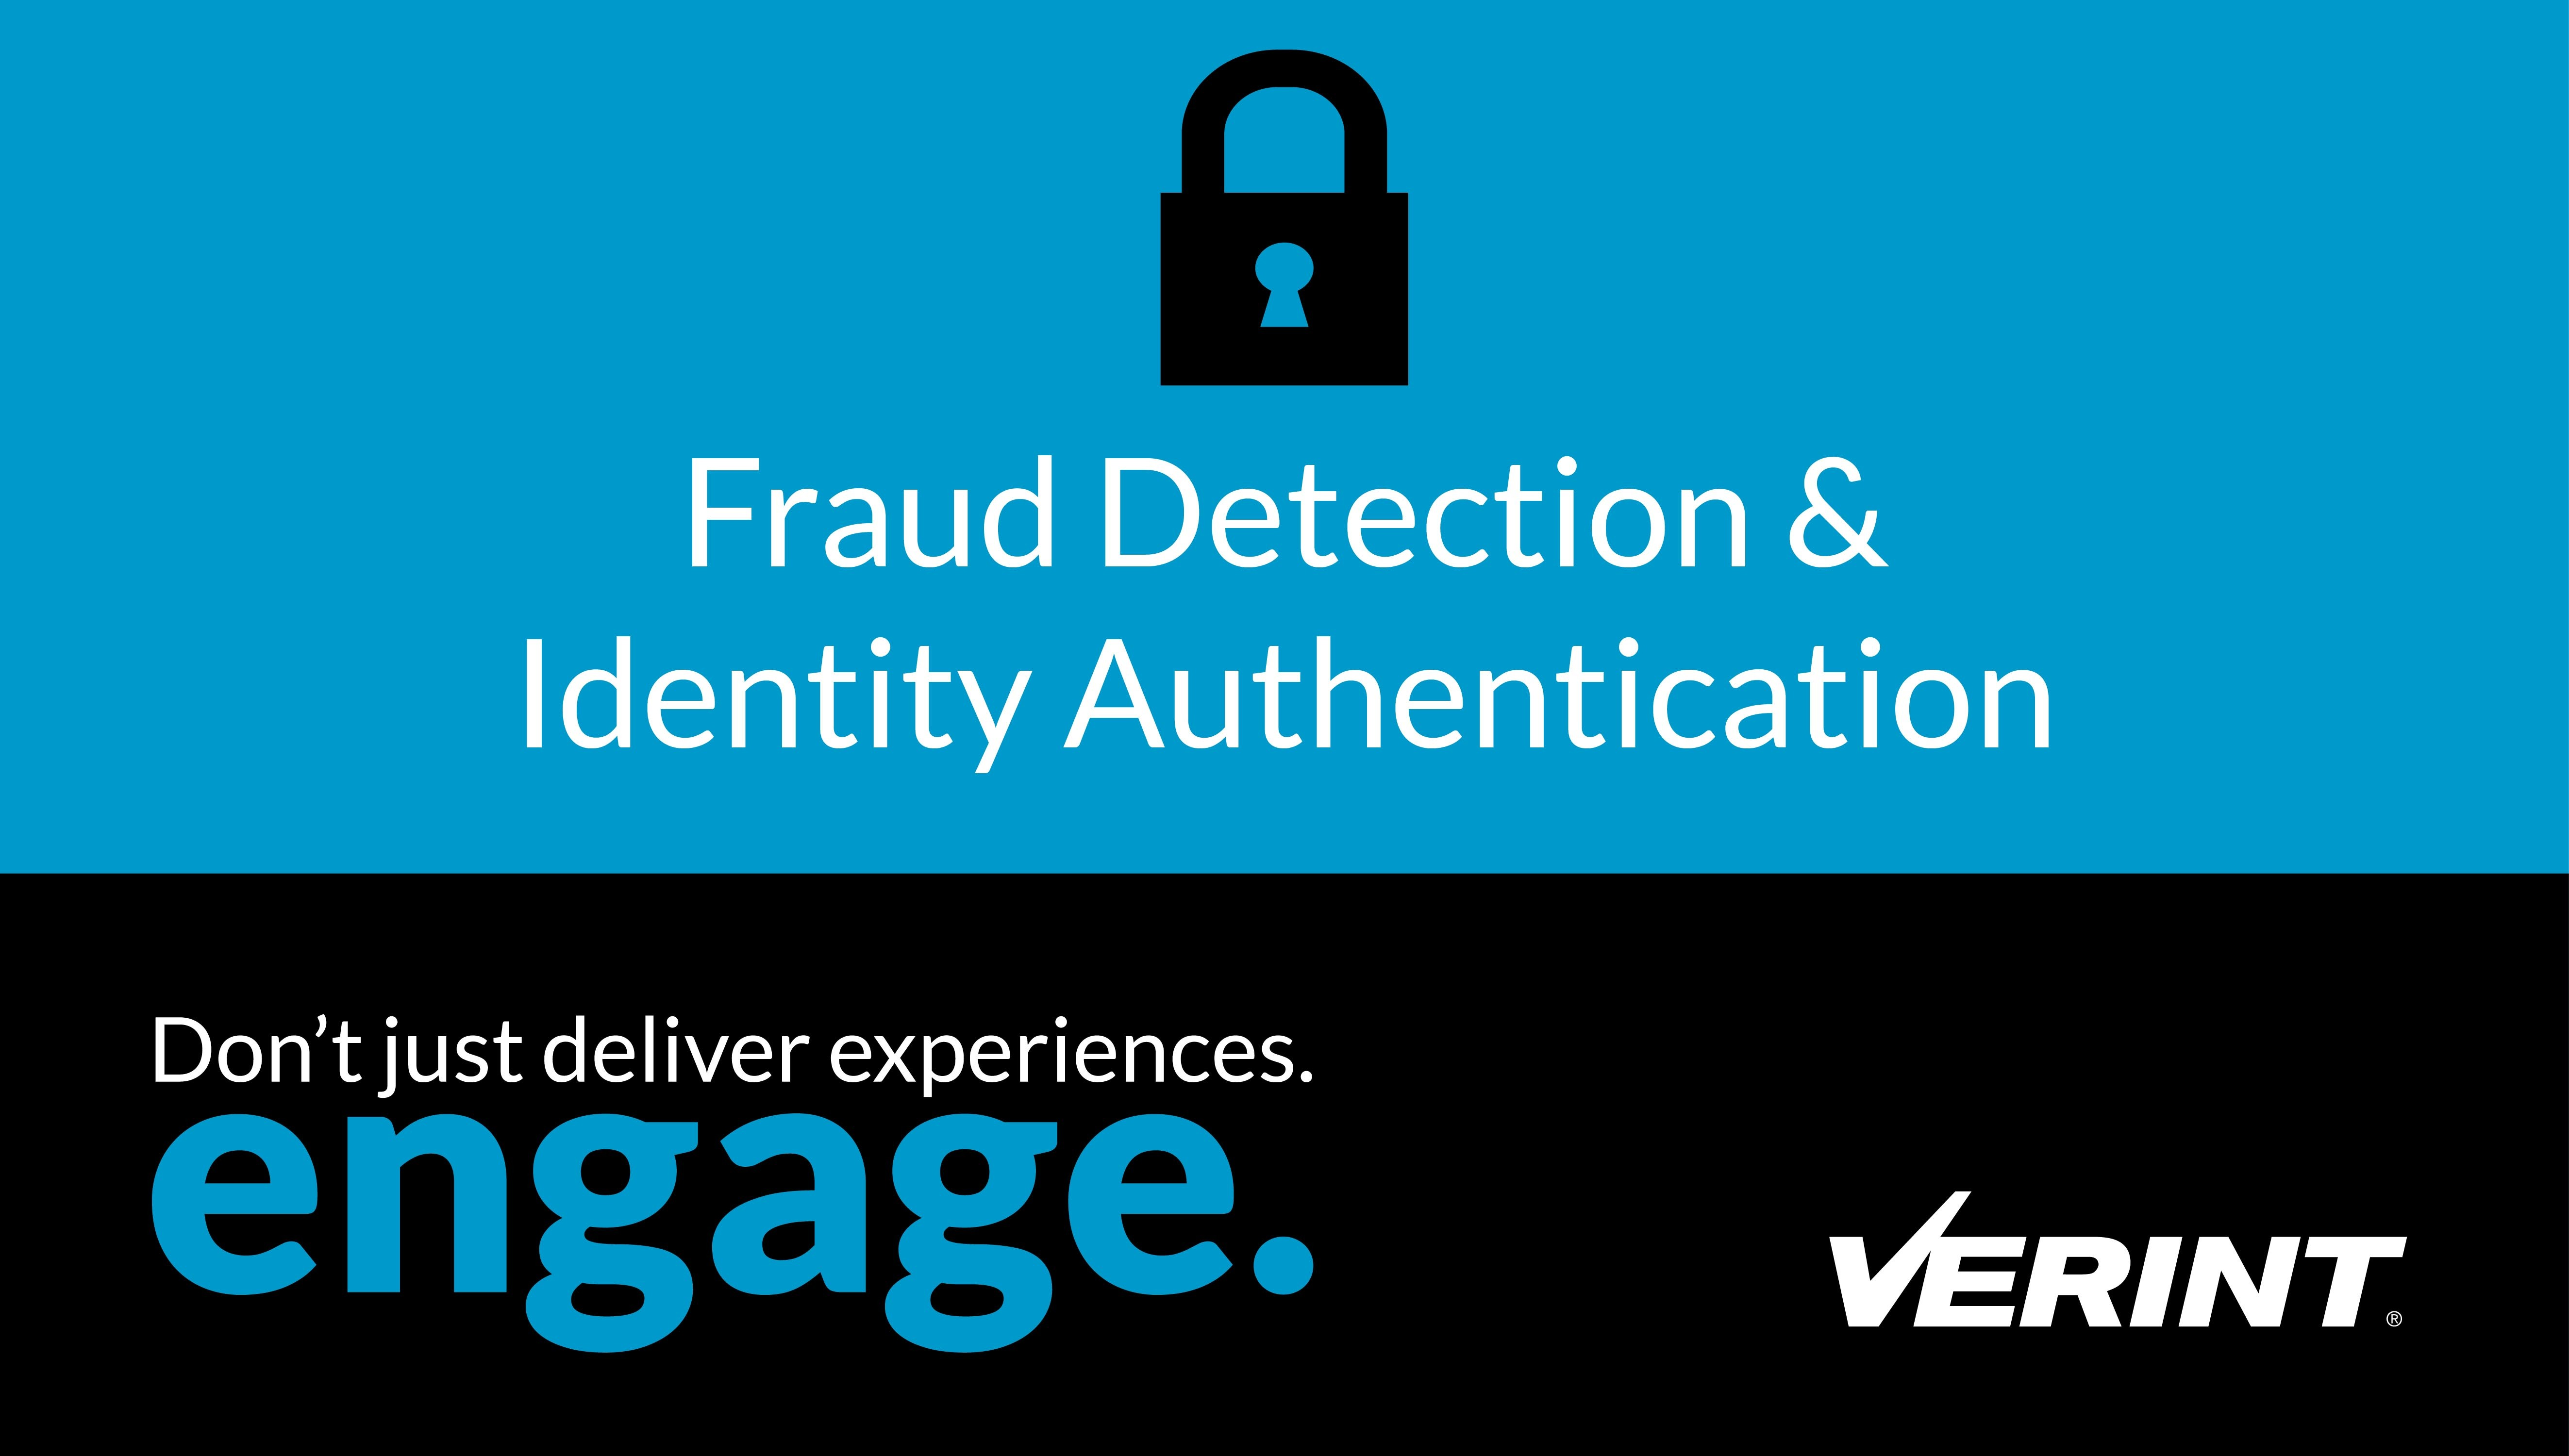 Verint Fraud Detection